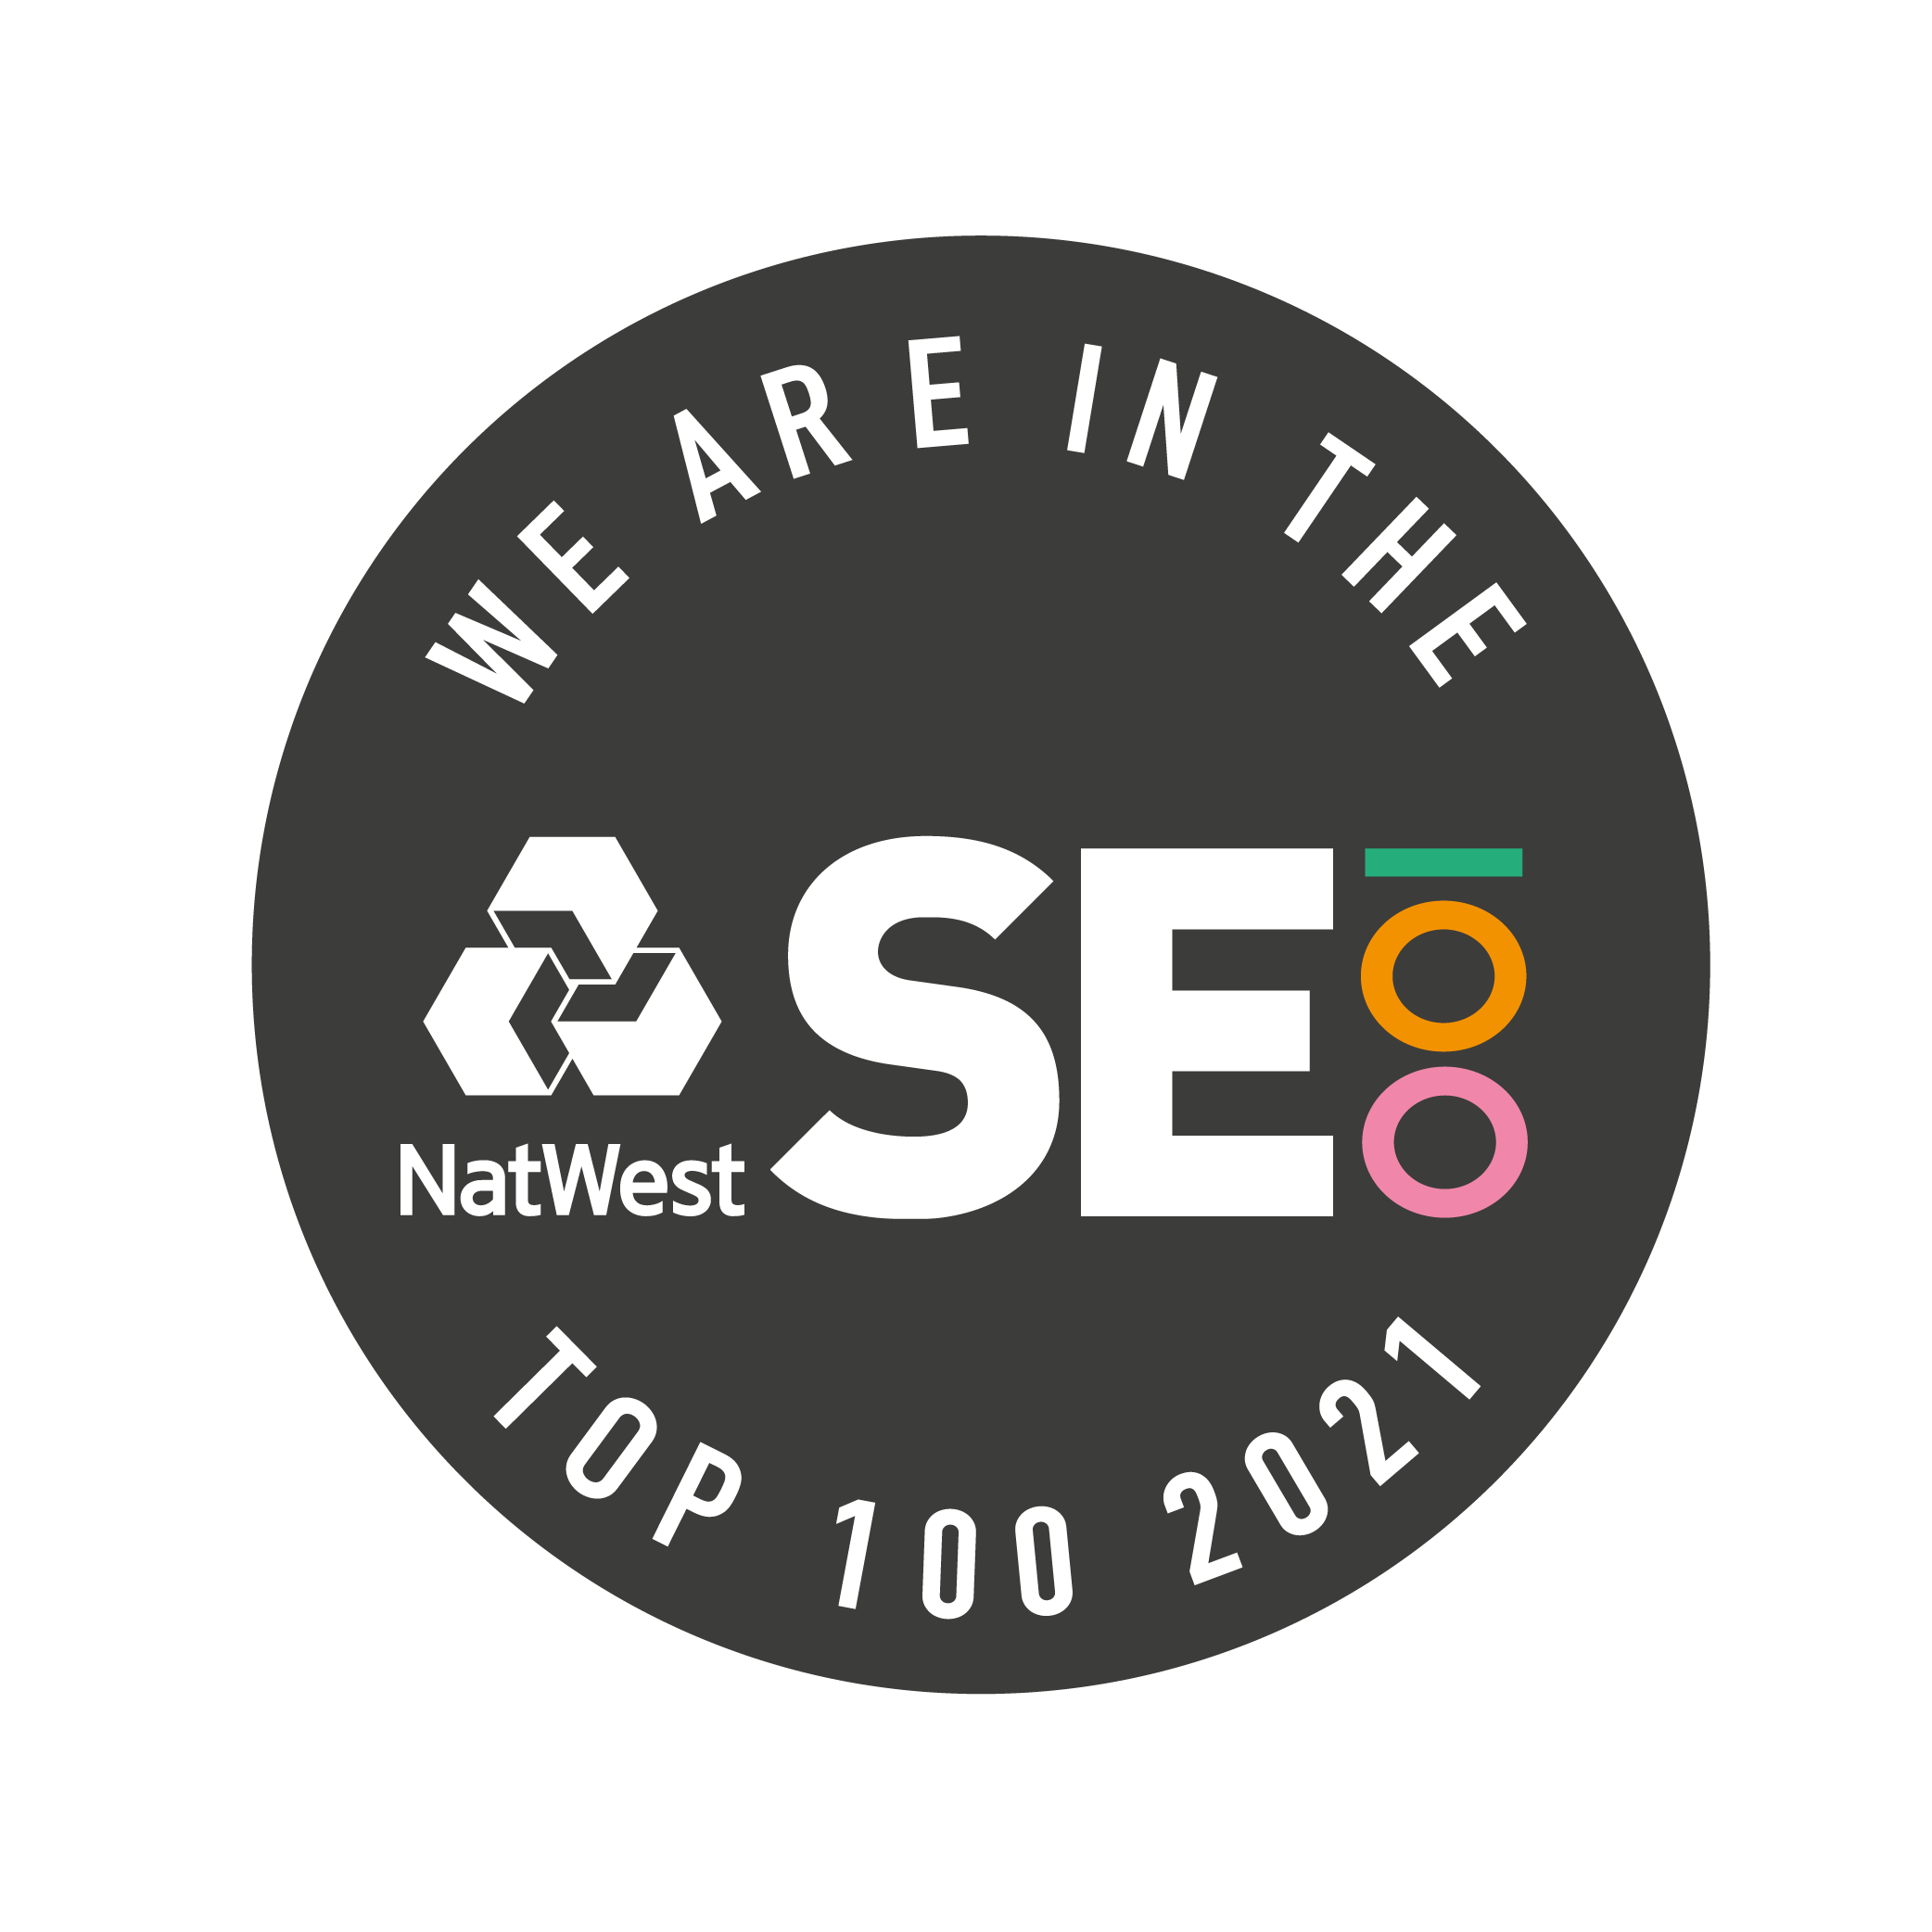 Click here to visit the Top 100 SE Pioneer's Post x NatWest page